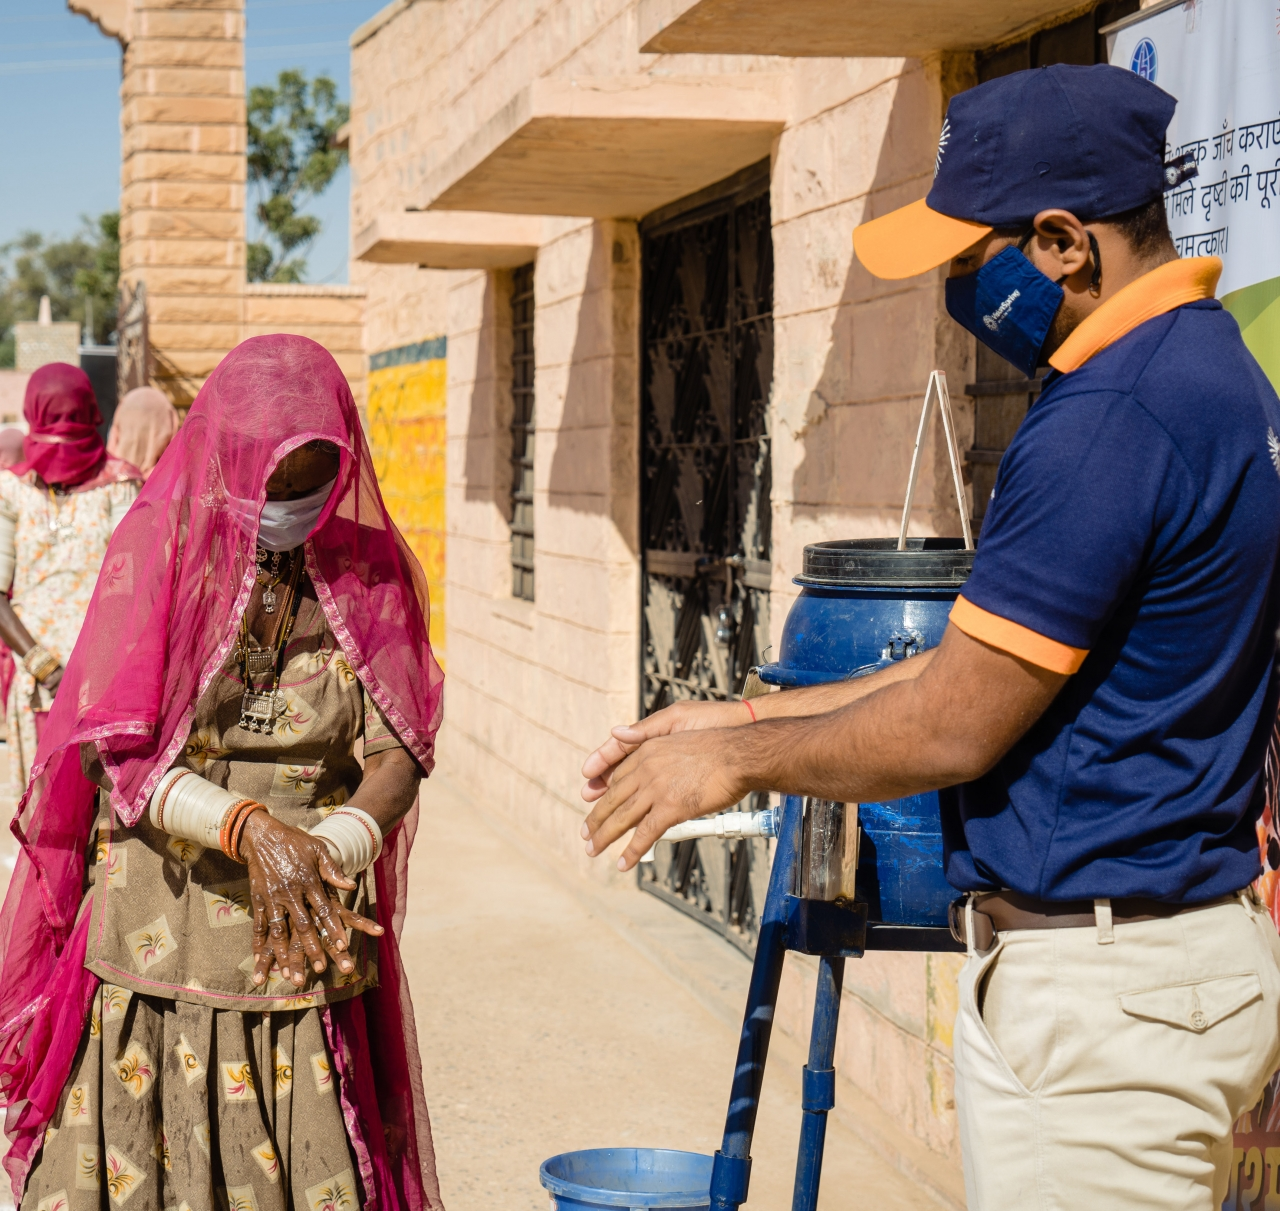 Dai Devi, a weaver in rural Barmer, Rajasthan, washing her hands at a handwashing station provided by VisionSpring. Hand hygiene to prevent the spread of COVID-19 is a core pillar of VisionSpring's emergency response.